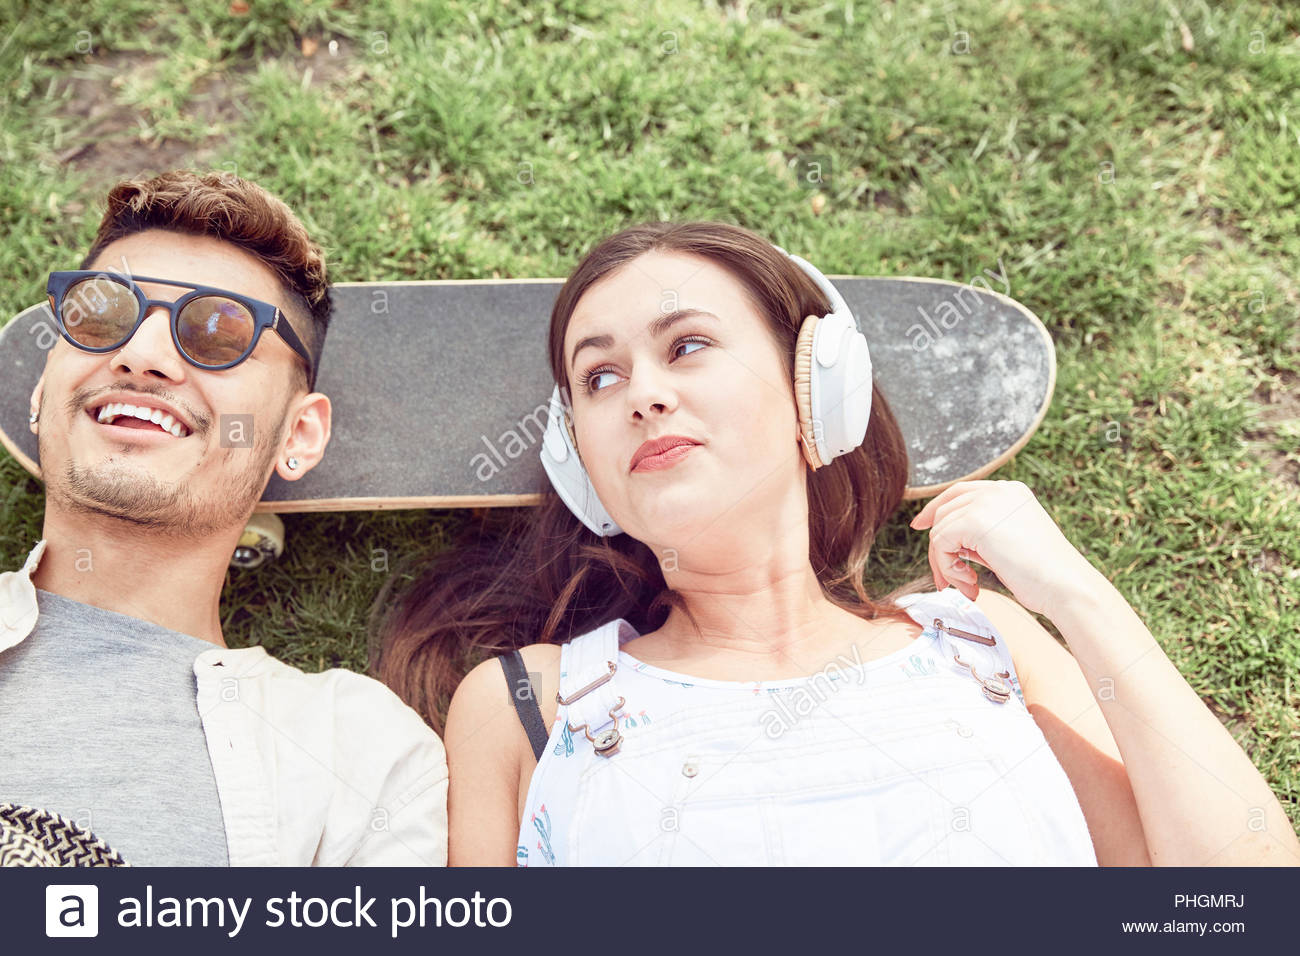 Teenage couple lying on skateboard at park Photo Stock